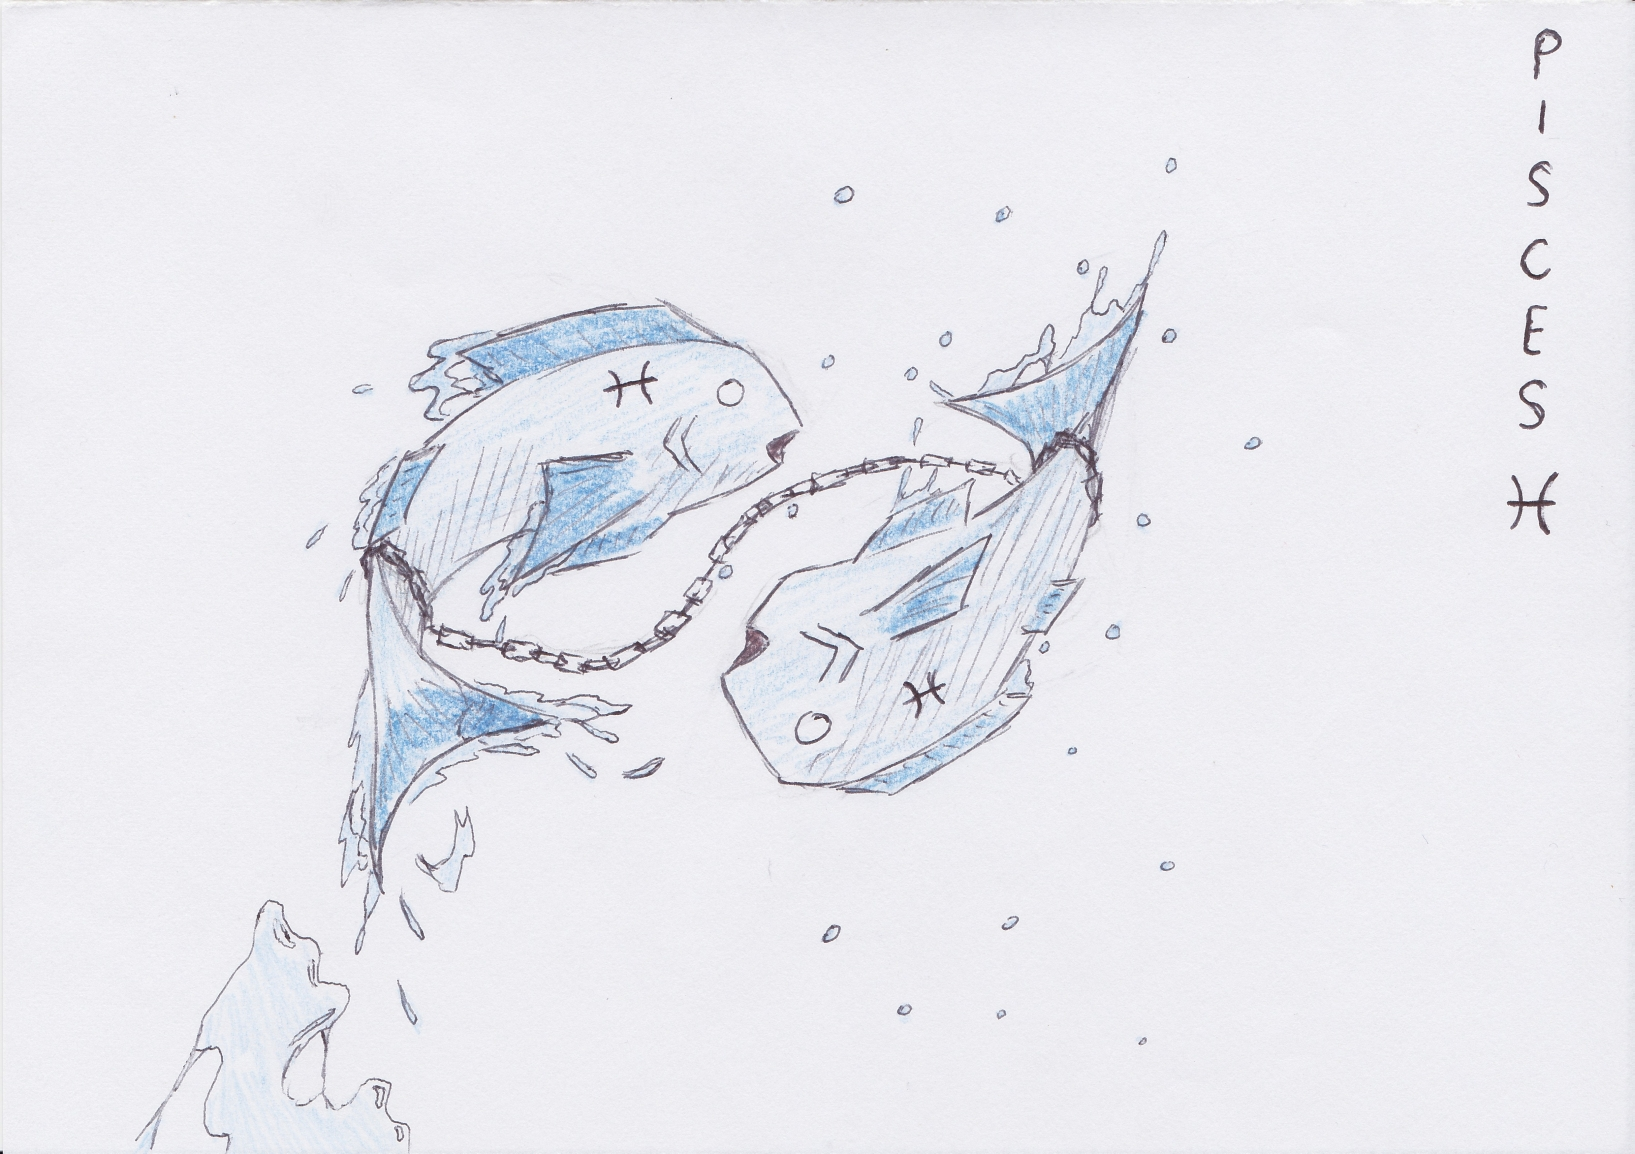 Pisces by DWito9